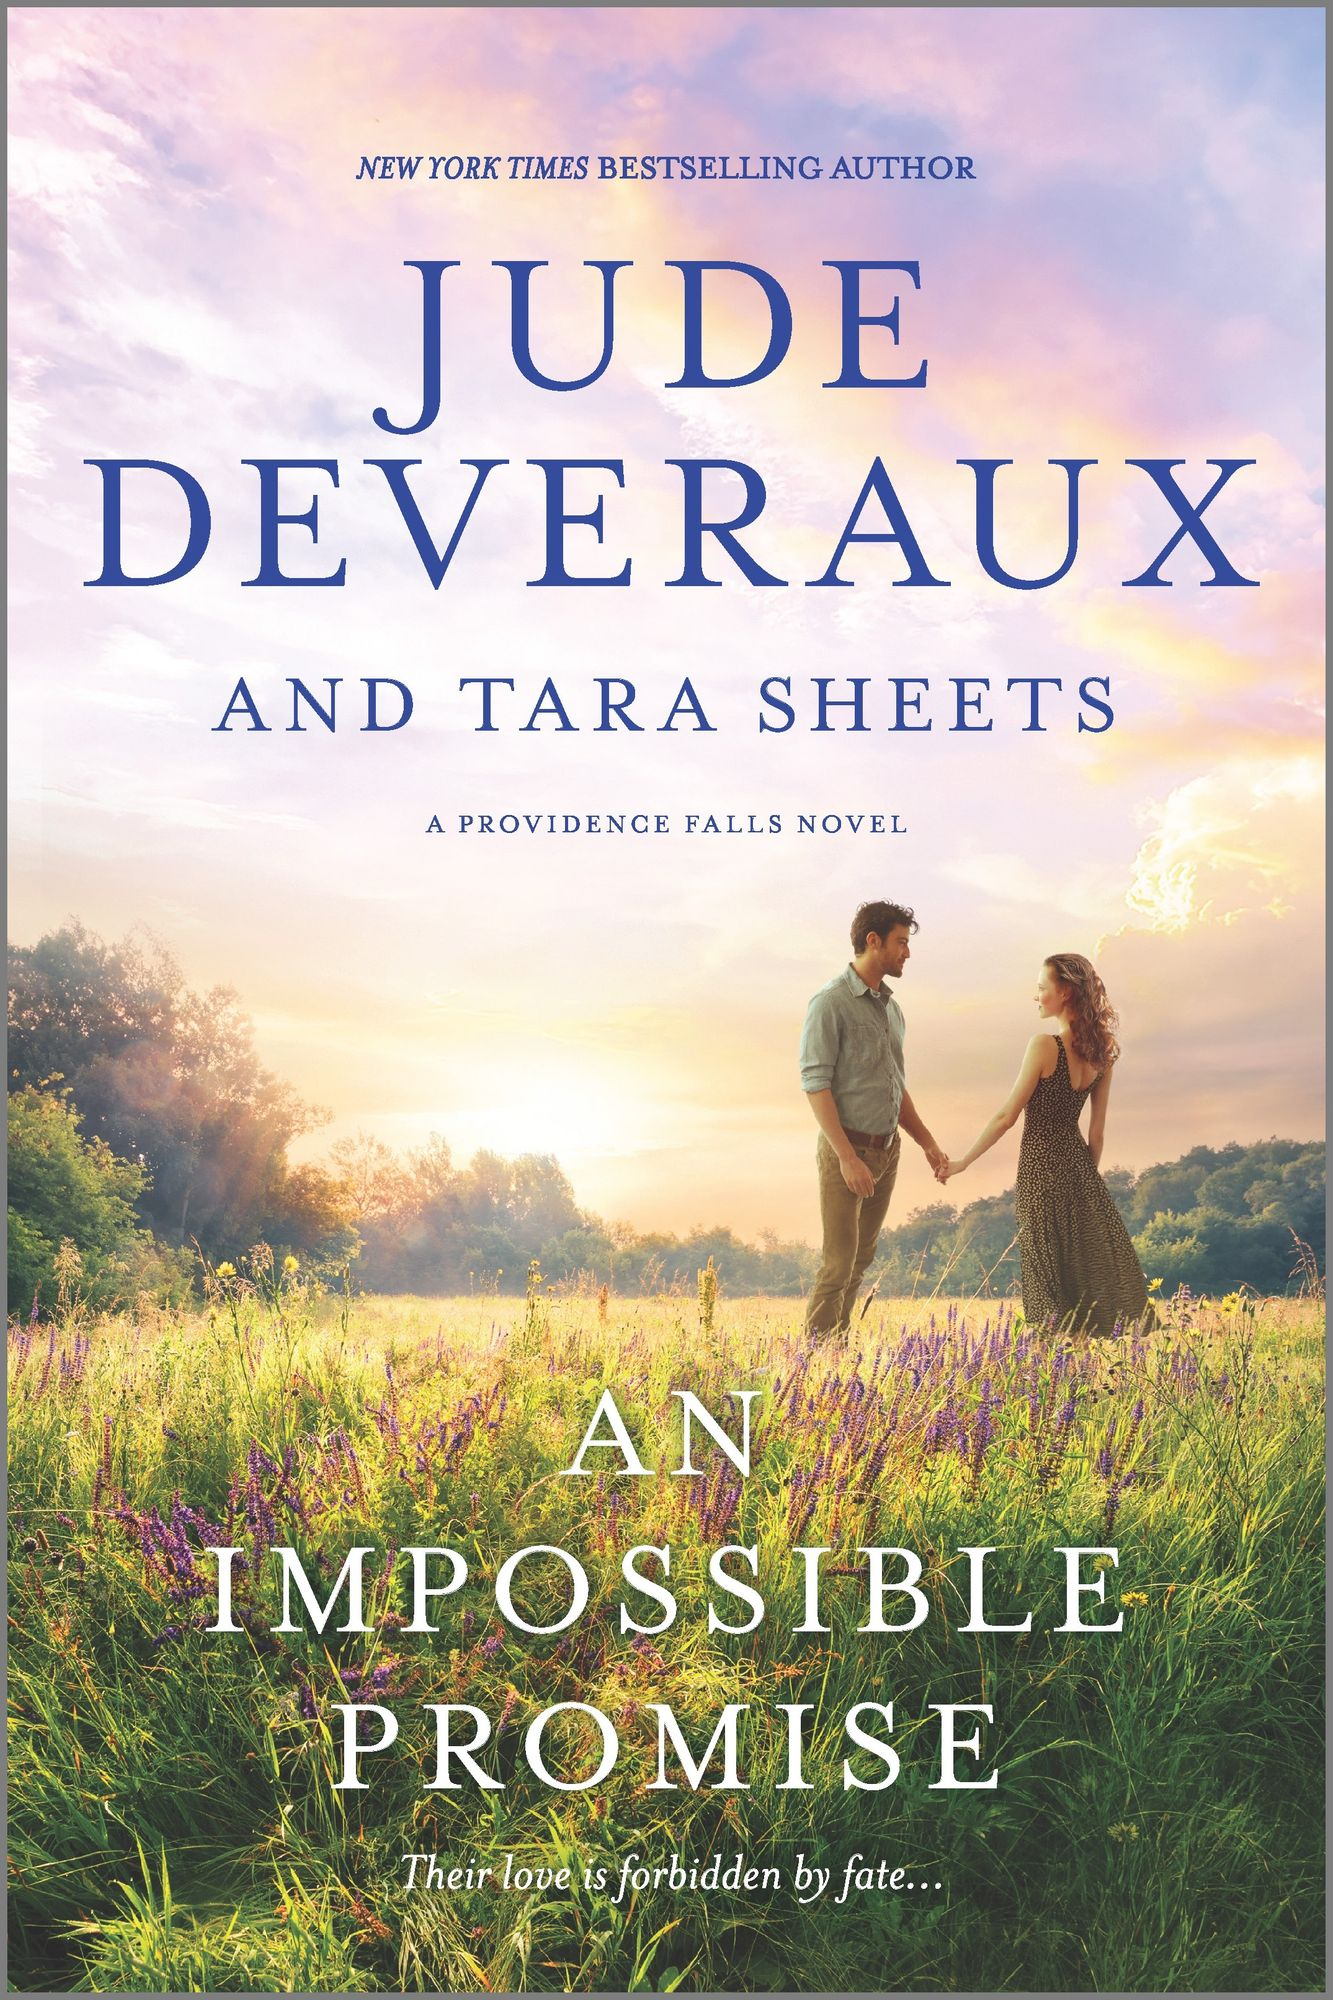 An Impossible Promise by Jude Deveraux and Tara Sheets